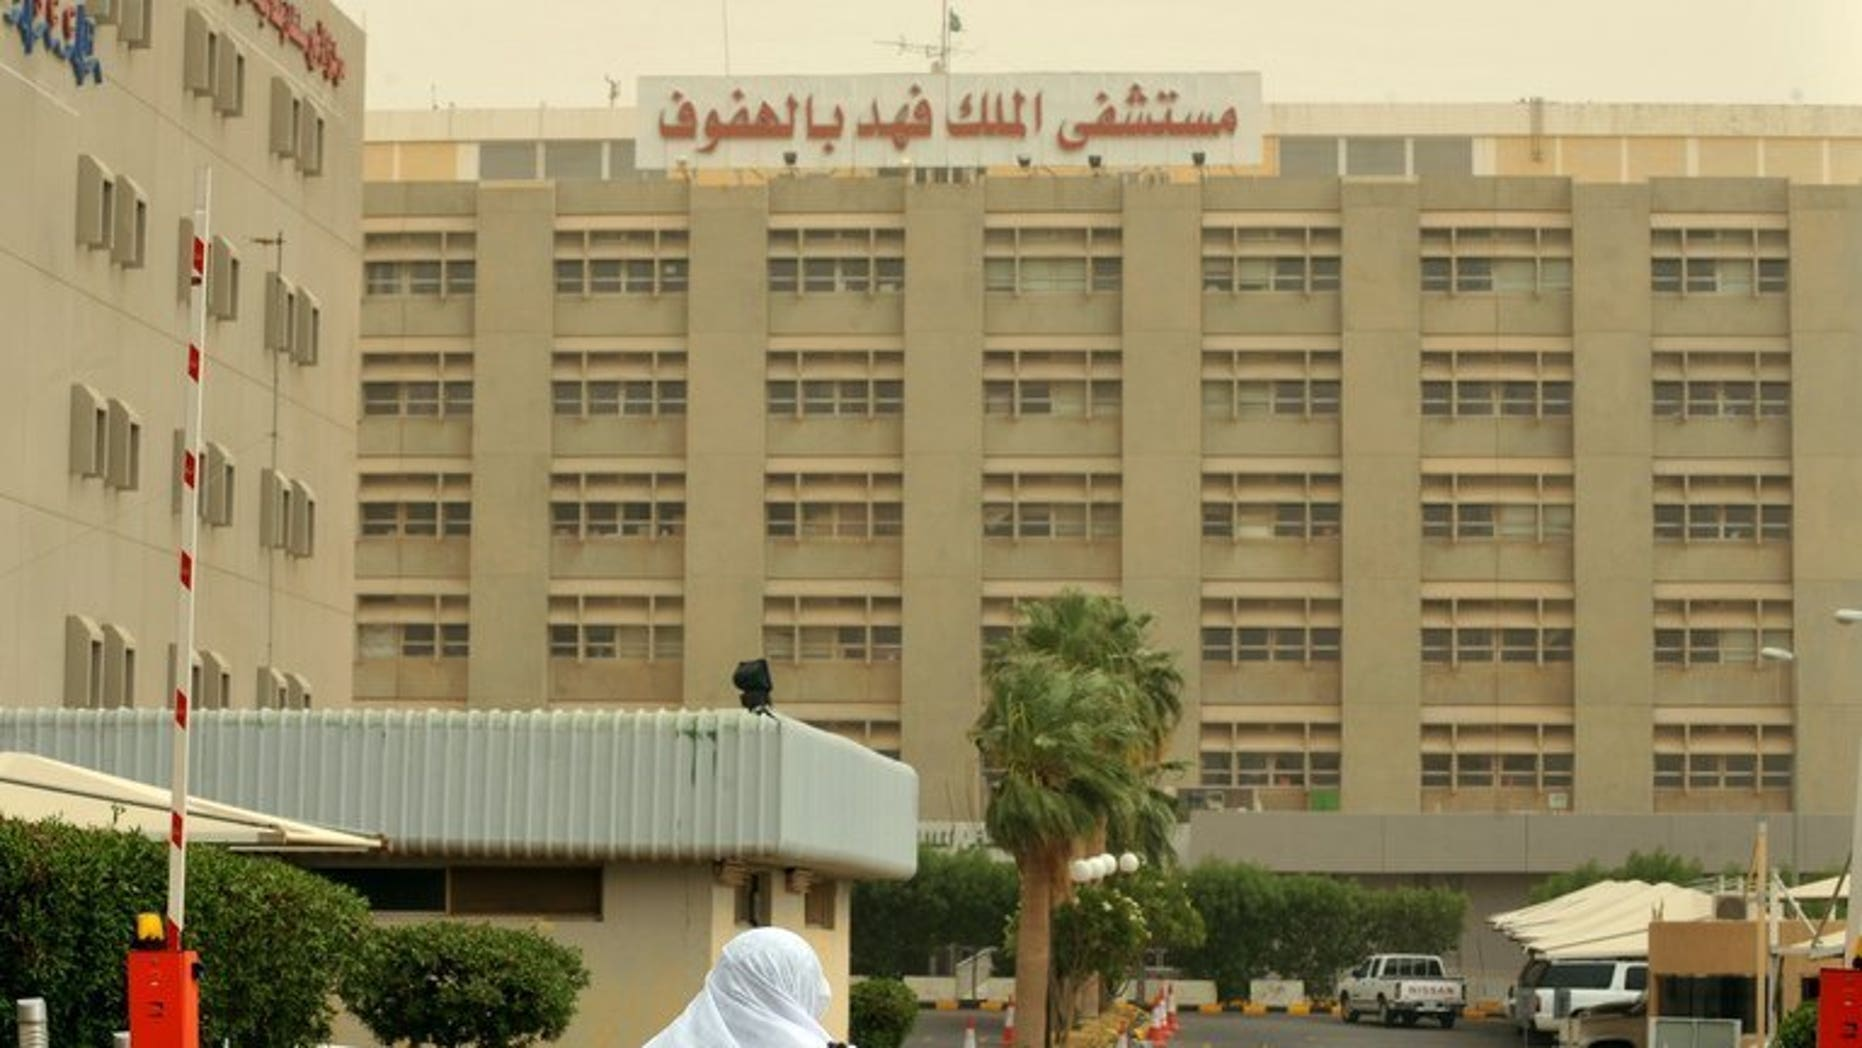 A Saudi nurse walks towards the King Fahad hospital in the city of Hofuf on June 16, 2013. A large influx of Muslim pilgrims on Saudi Arabia during the fasting month of Ramadan passed without any cases of the MERS coronavirus infection reported, authorities said.